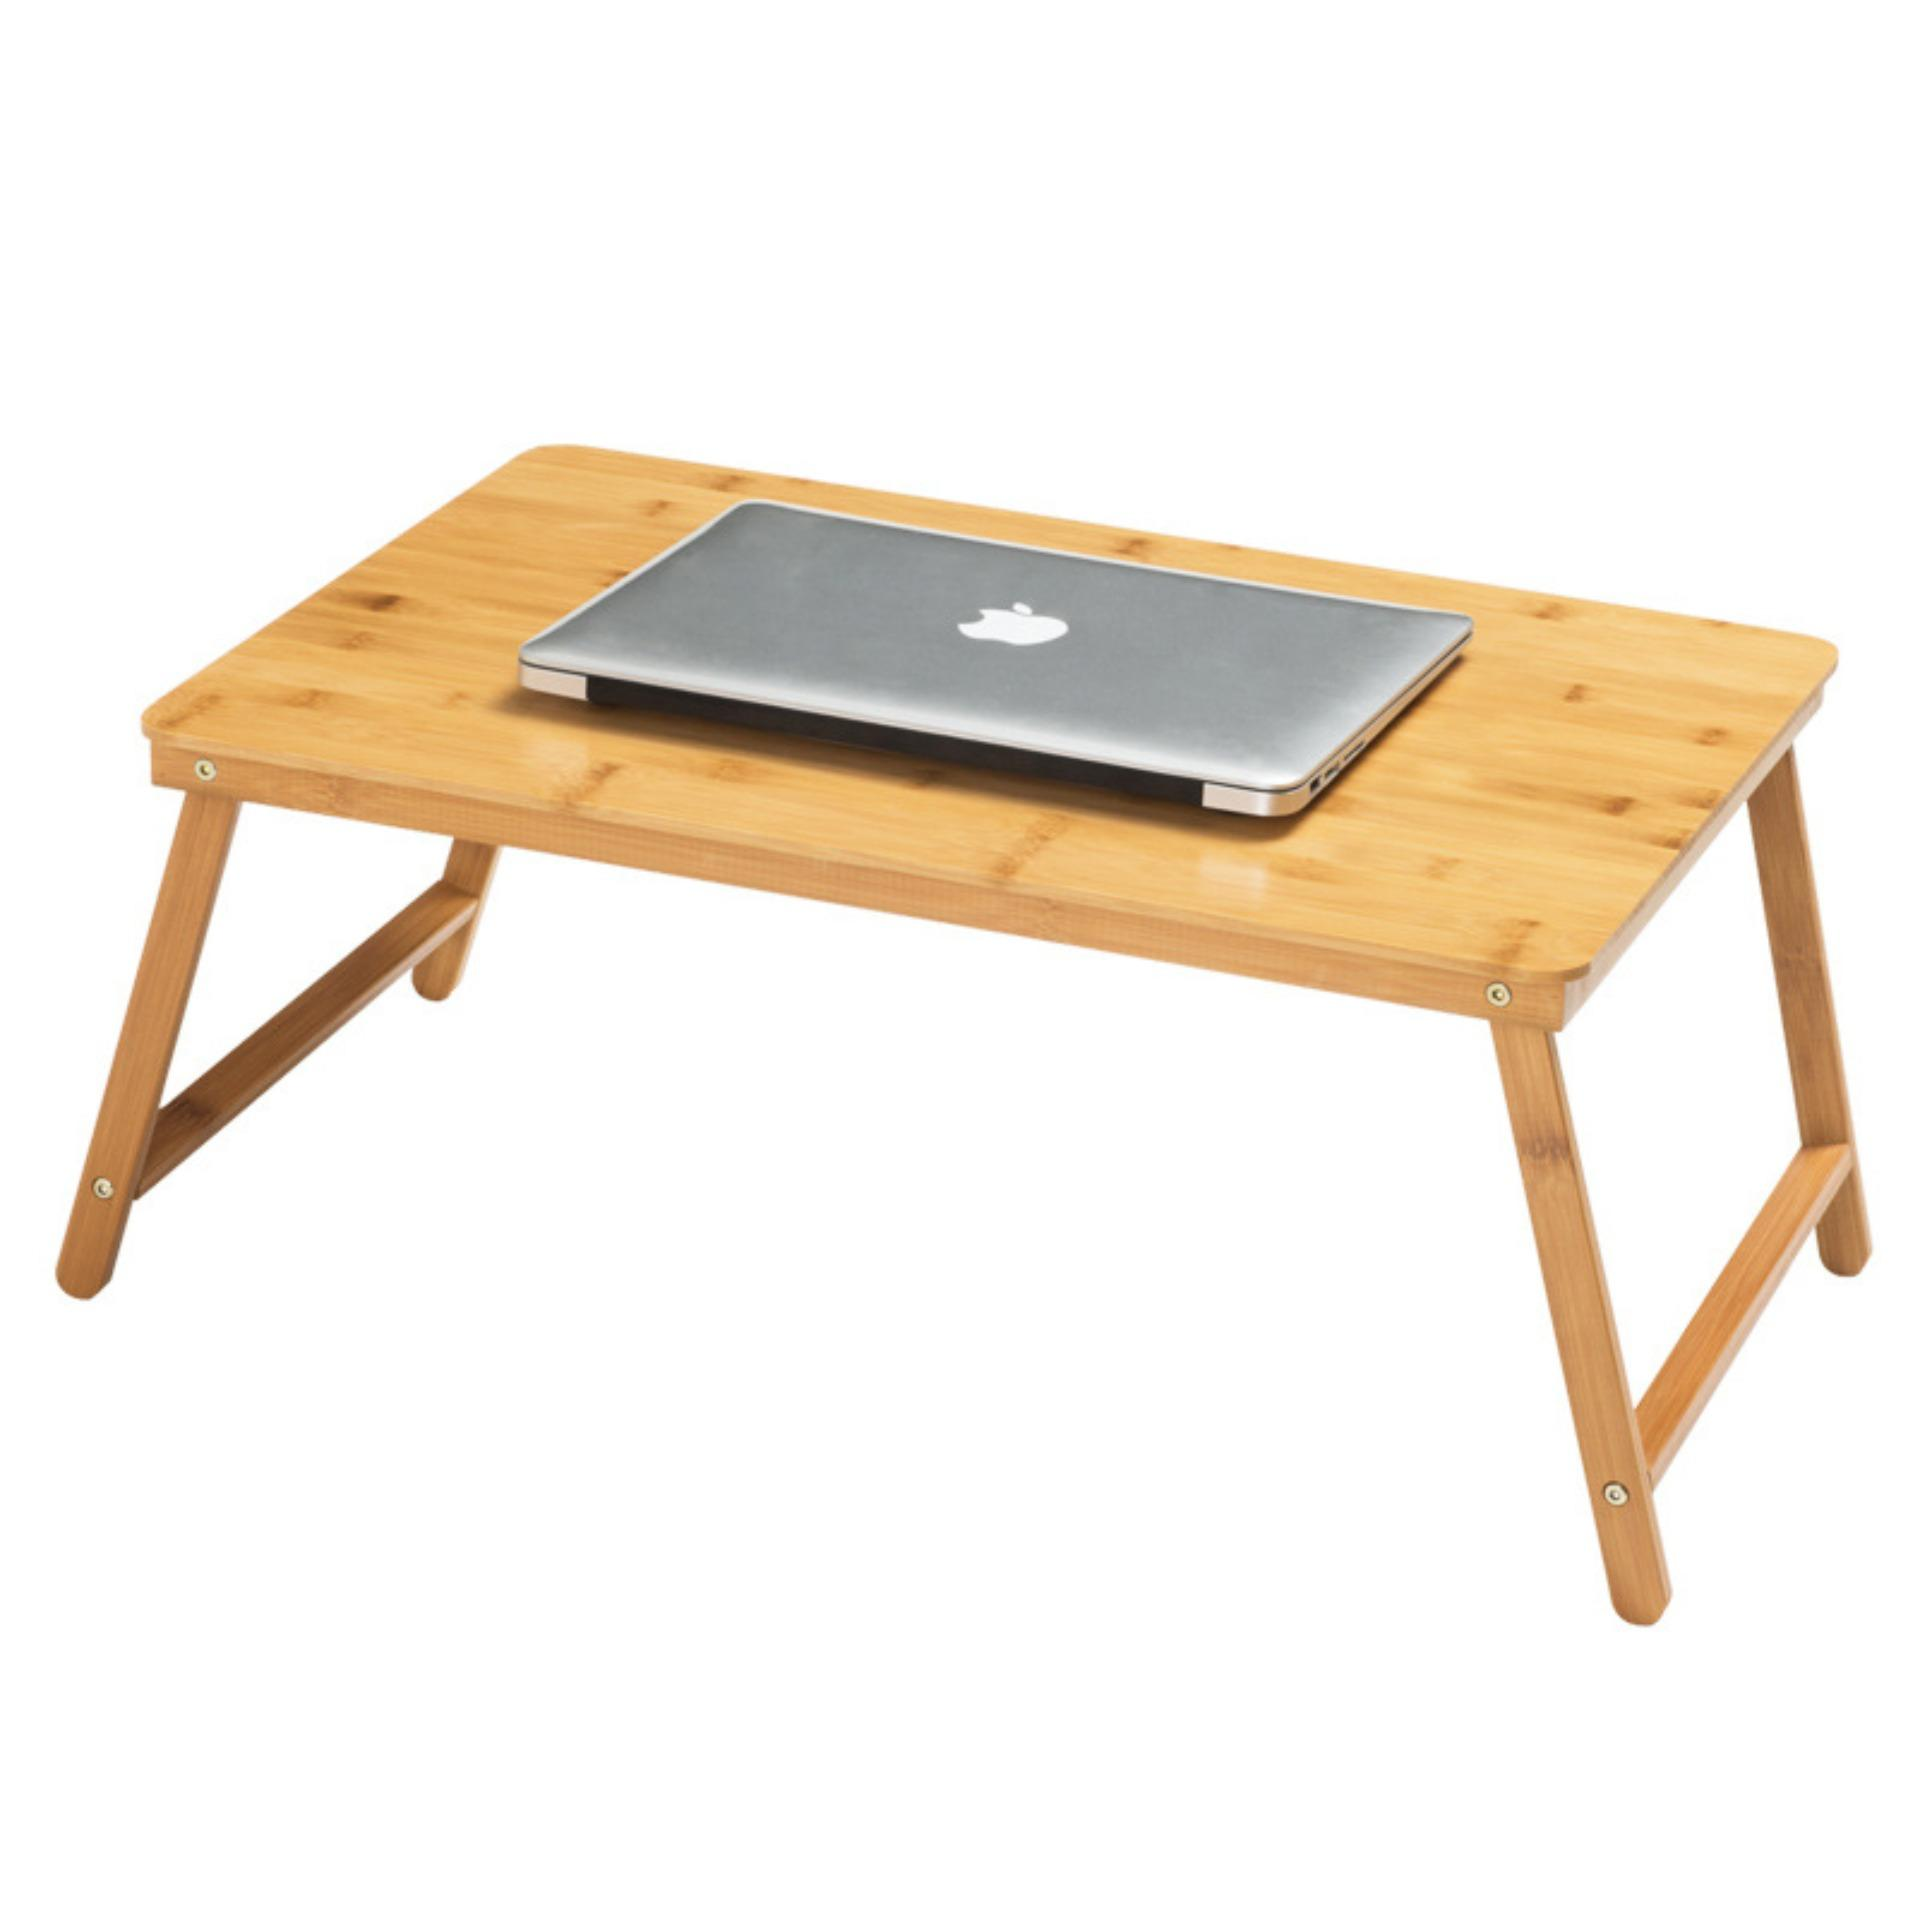 Norzy Foldable Bamboo Bed Side Table Laptop Notebook Table Kids Study Desk By Norzy Singapore.